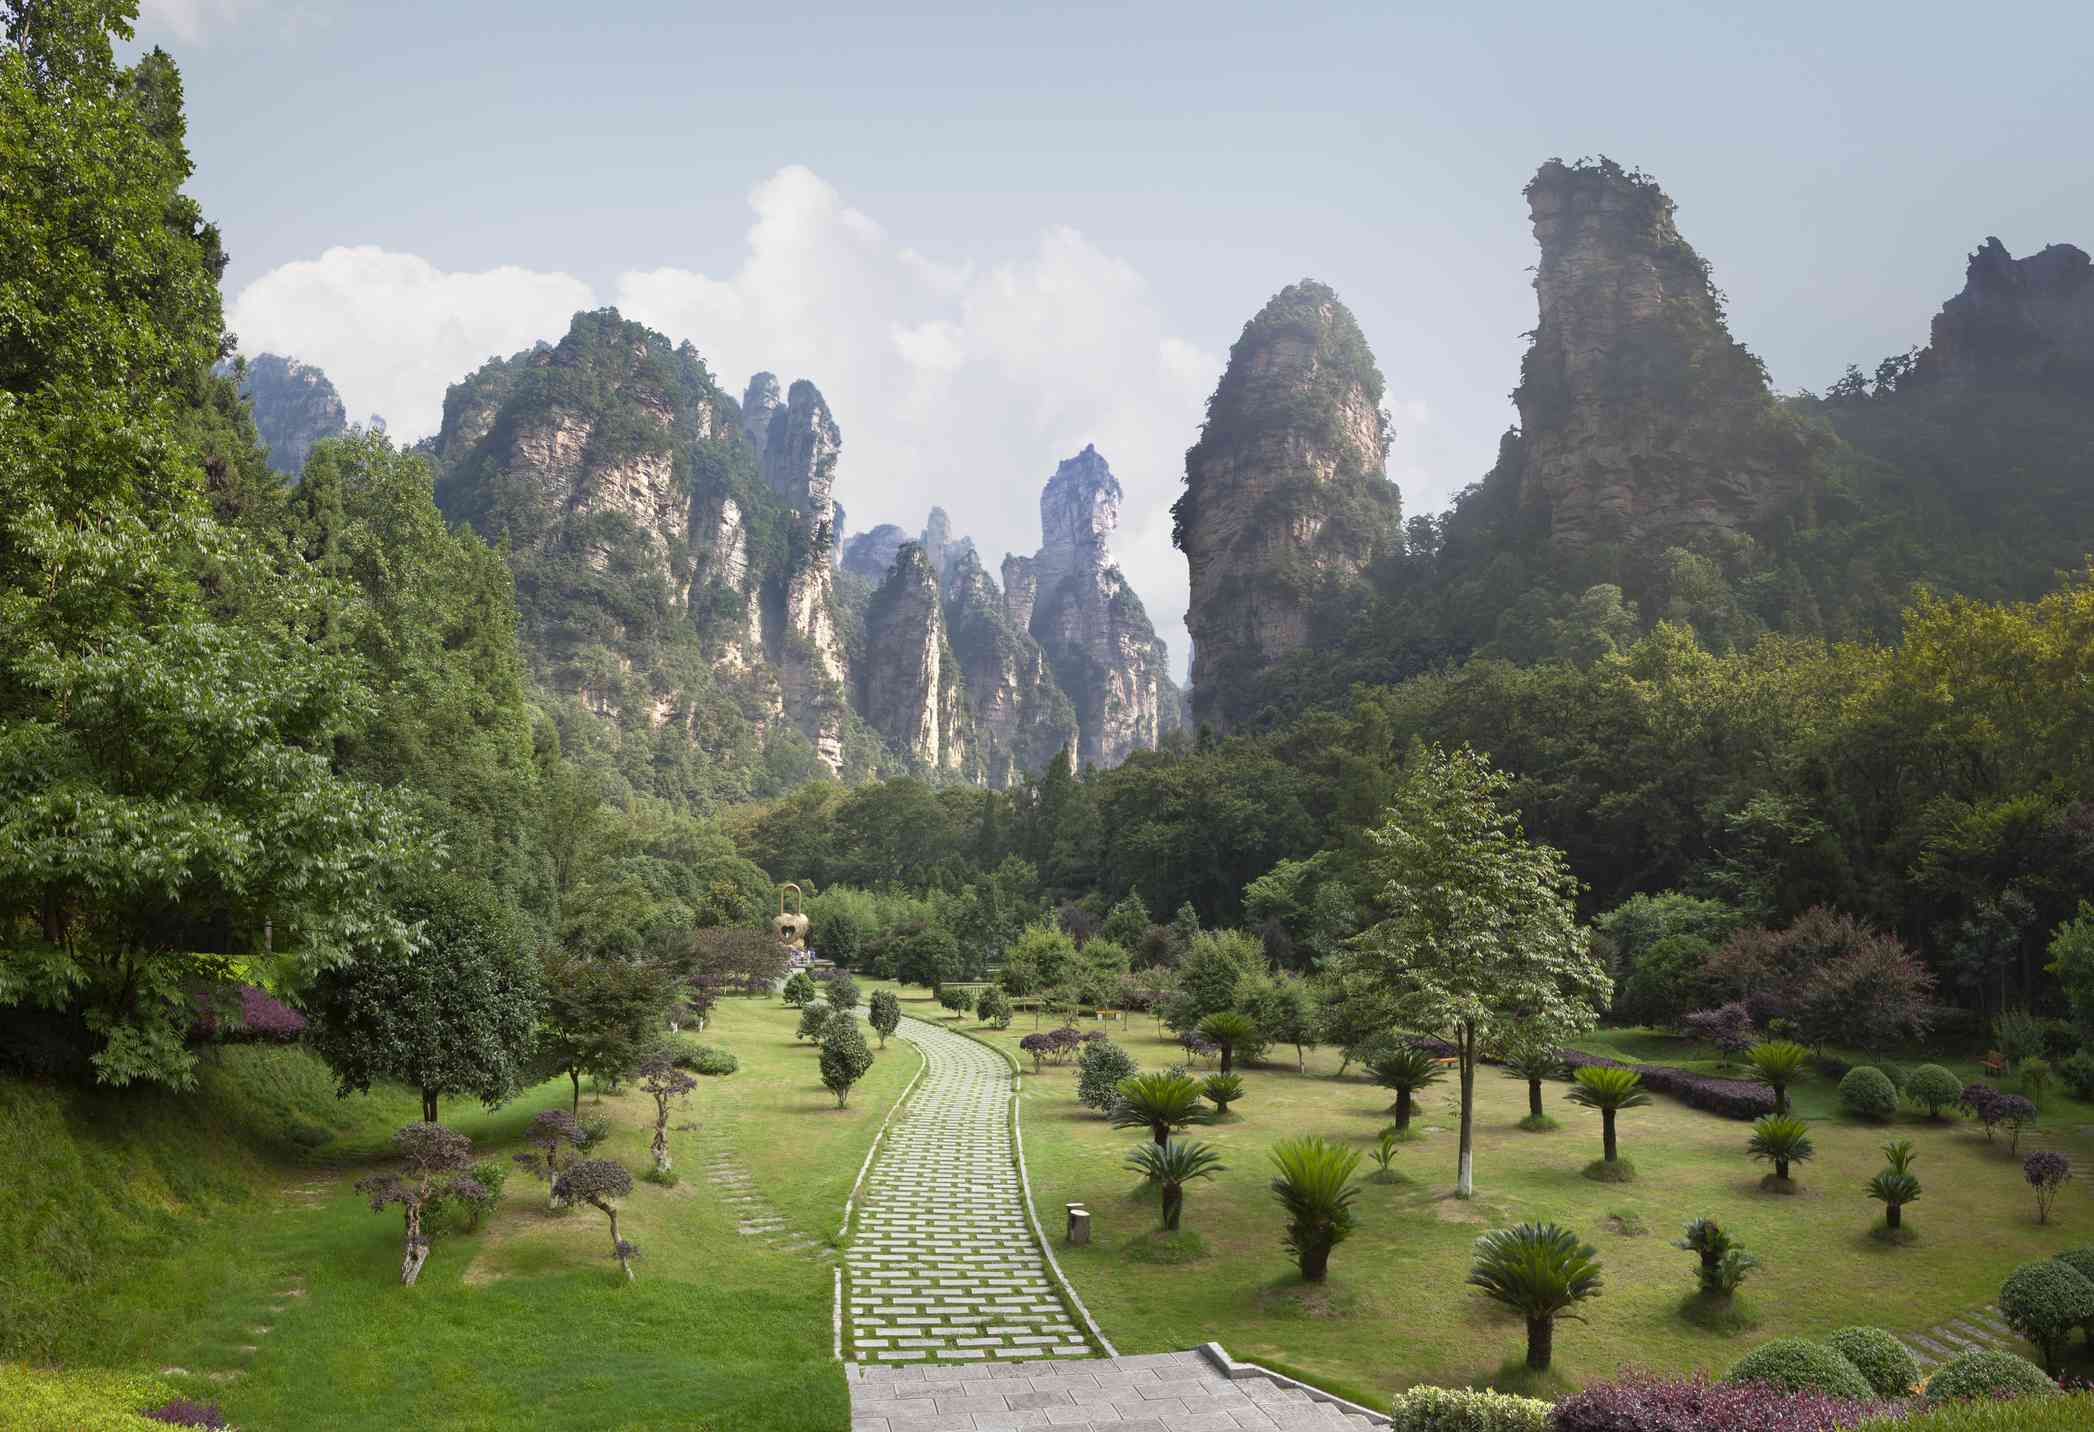 Trees and pathways of Zhangjiajie Forest Park, China